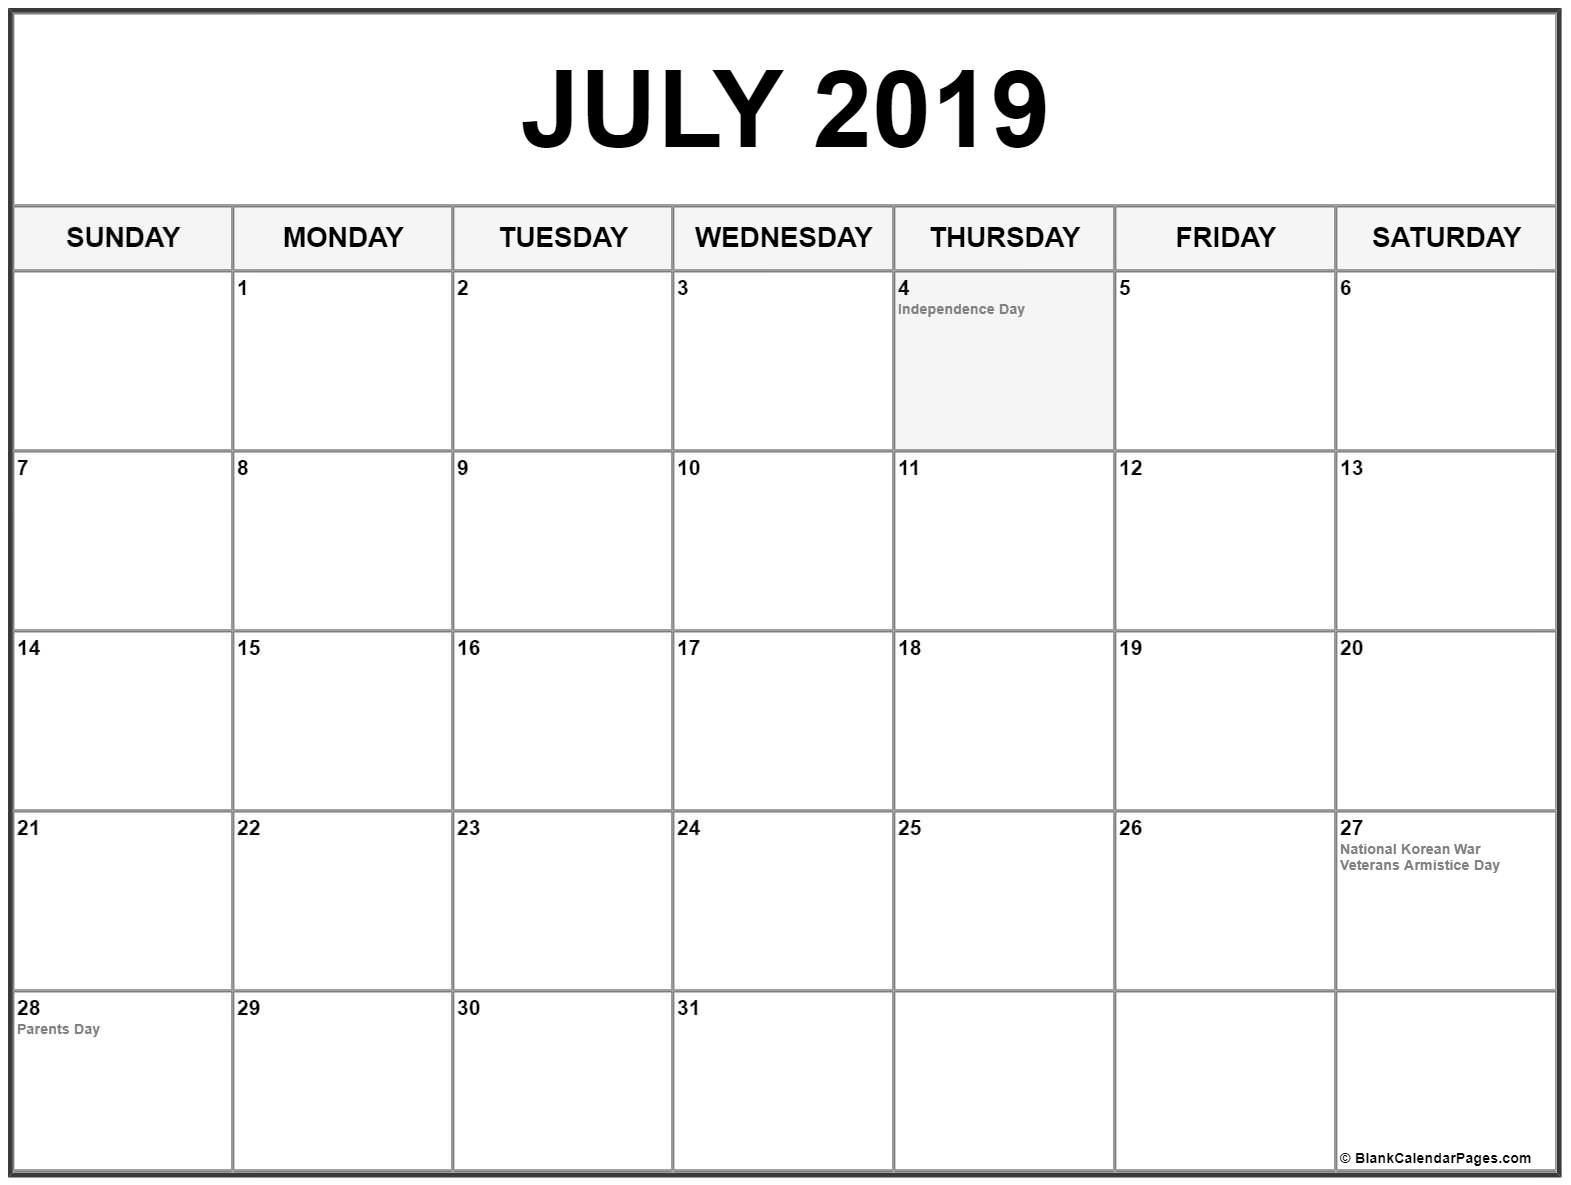 July 2019 Calendar With Holidays #july #july2019 #julycalendar2019 within Calendar Maker July 2019-June 2020